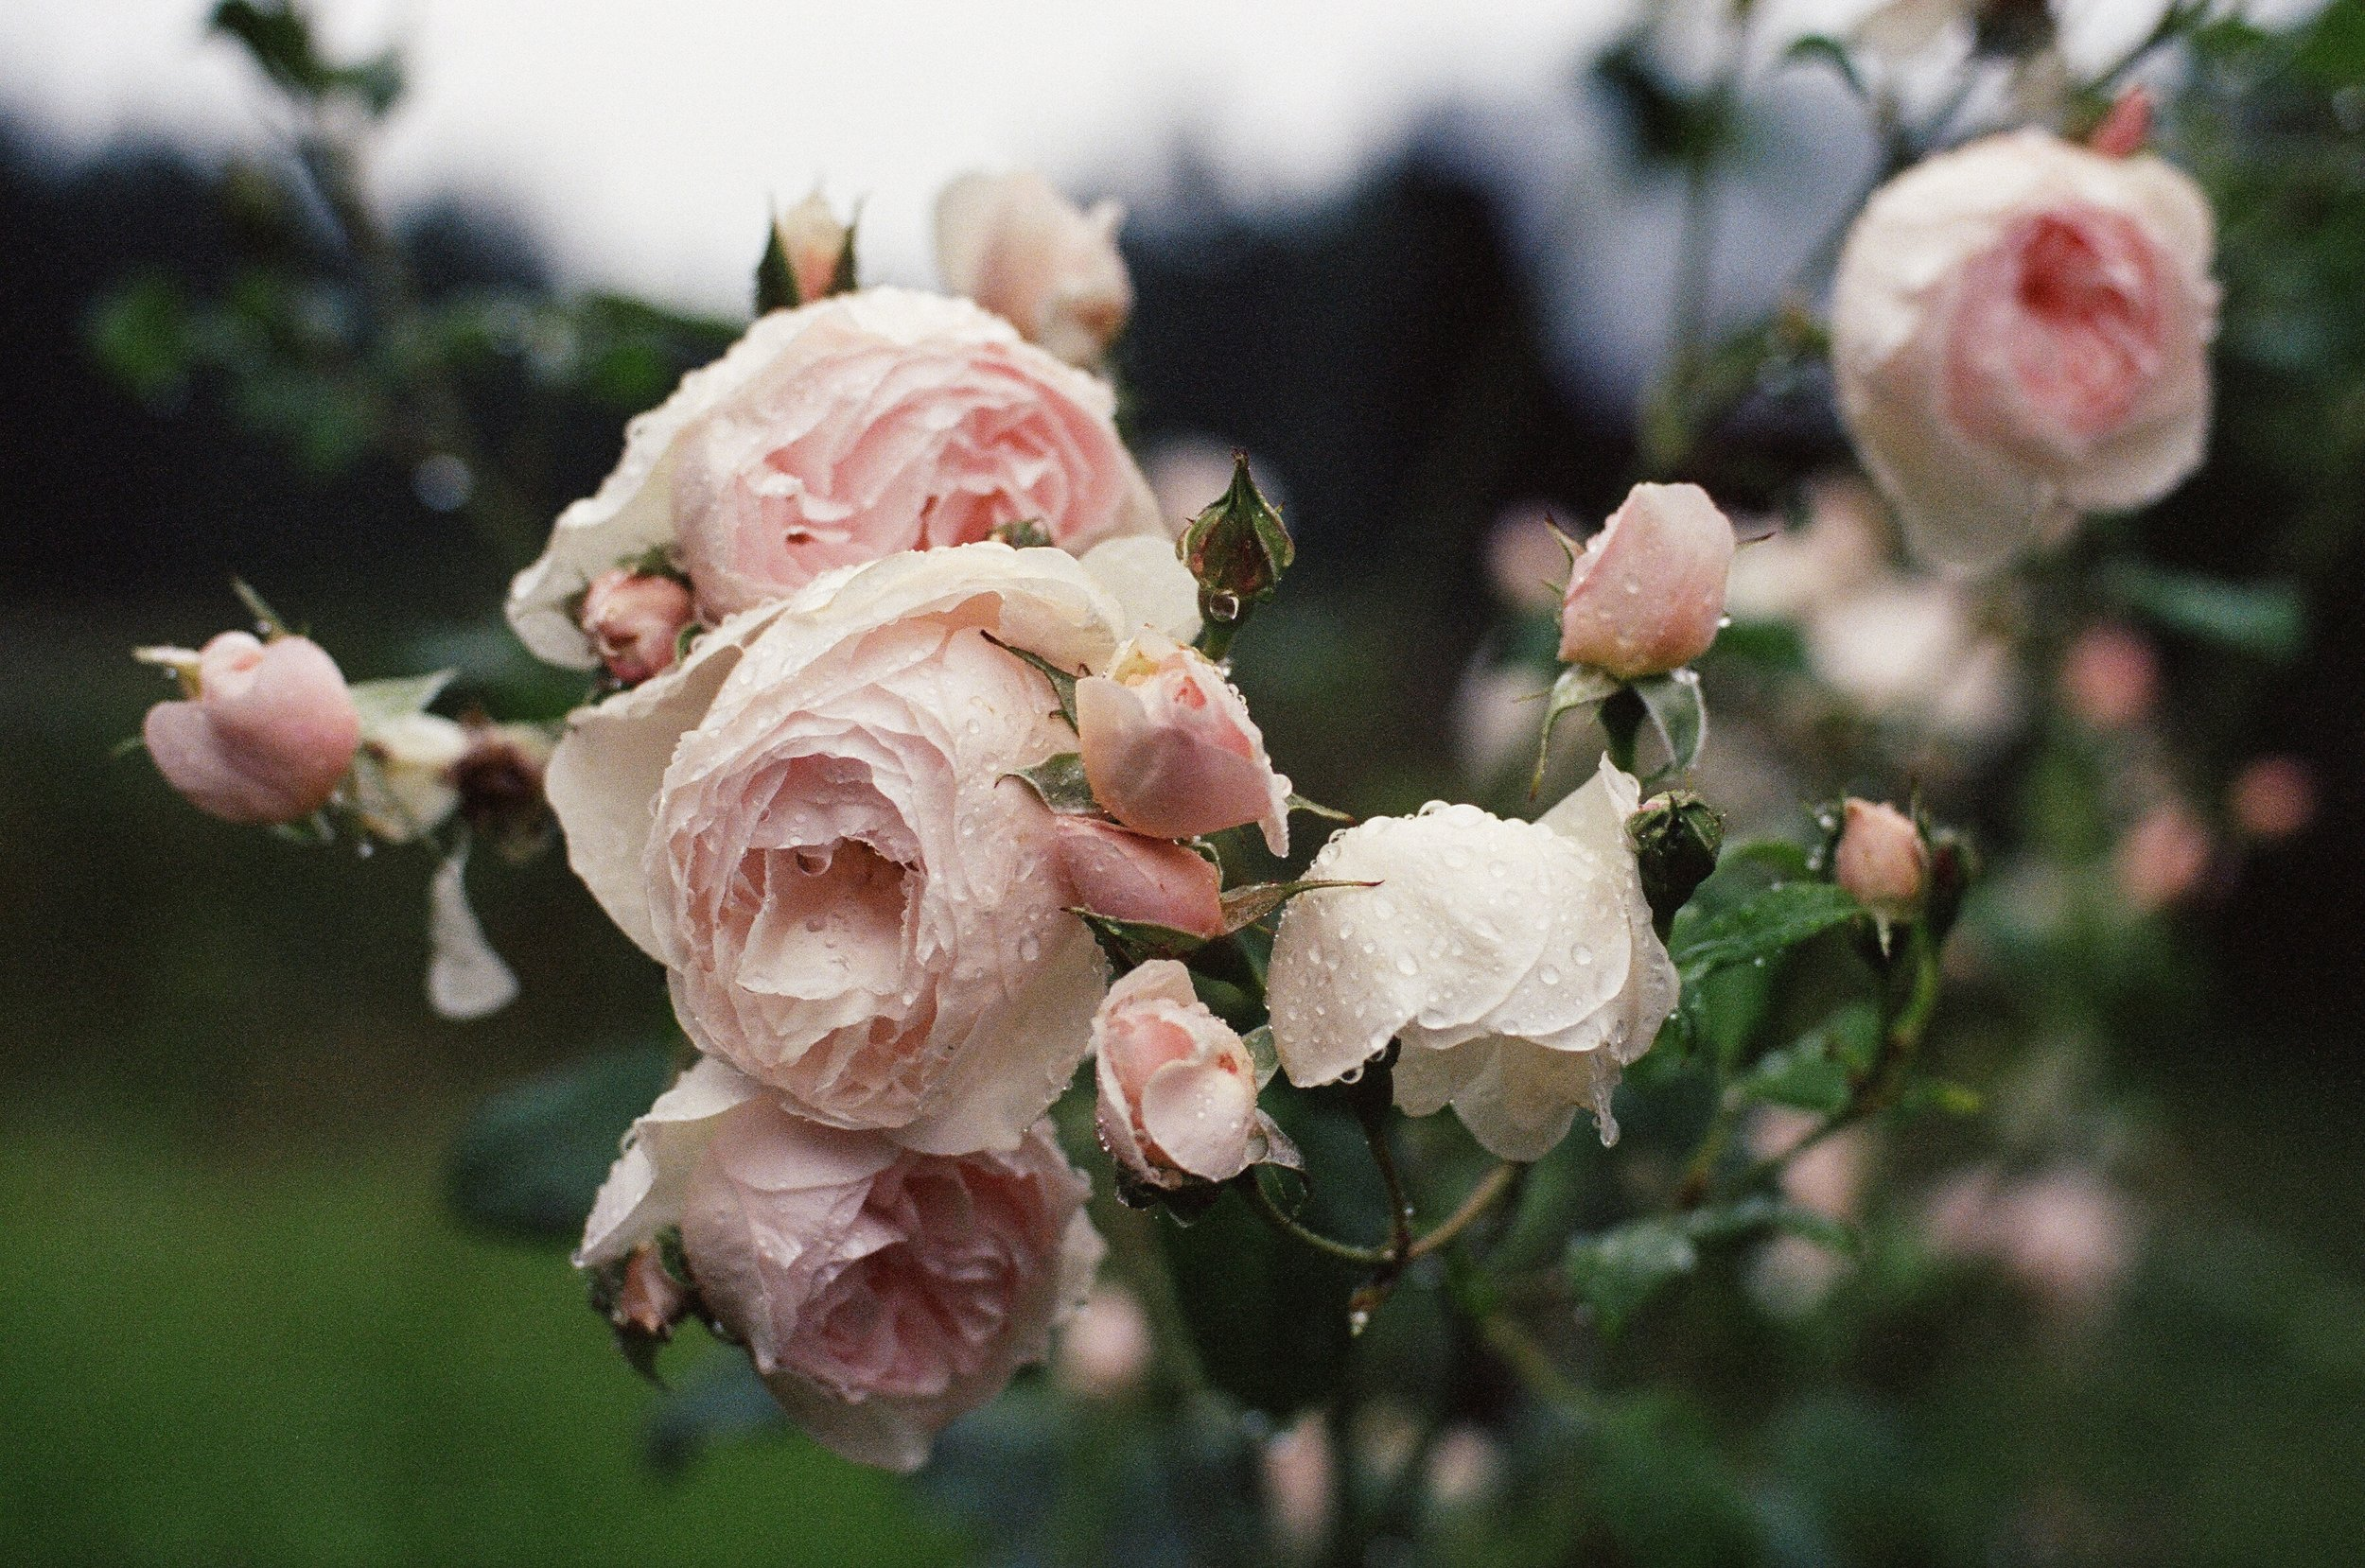 Raindrops on Roses by Siri Thorson